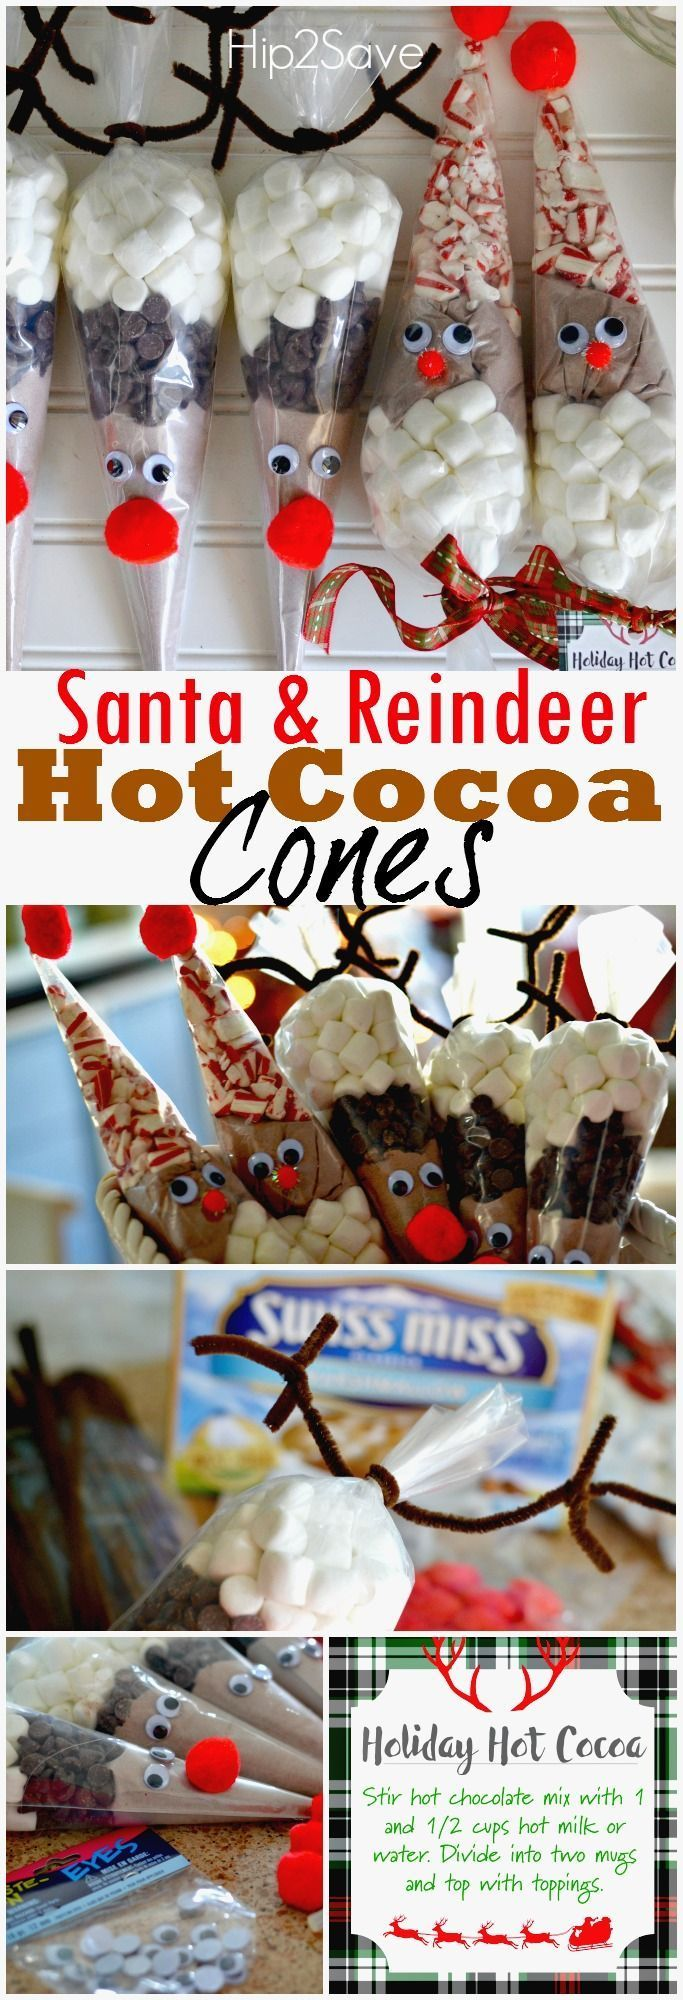 Santa & Reindeer Hot Cocoa Cones (Easy Holiday Craft & Gift Idea – Catherine Oliver